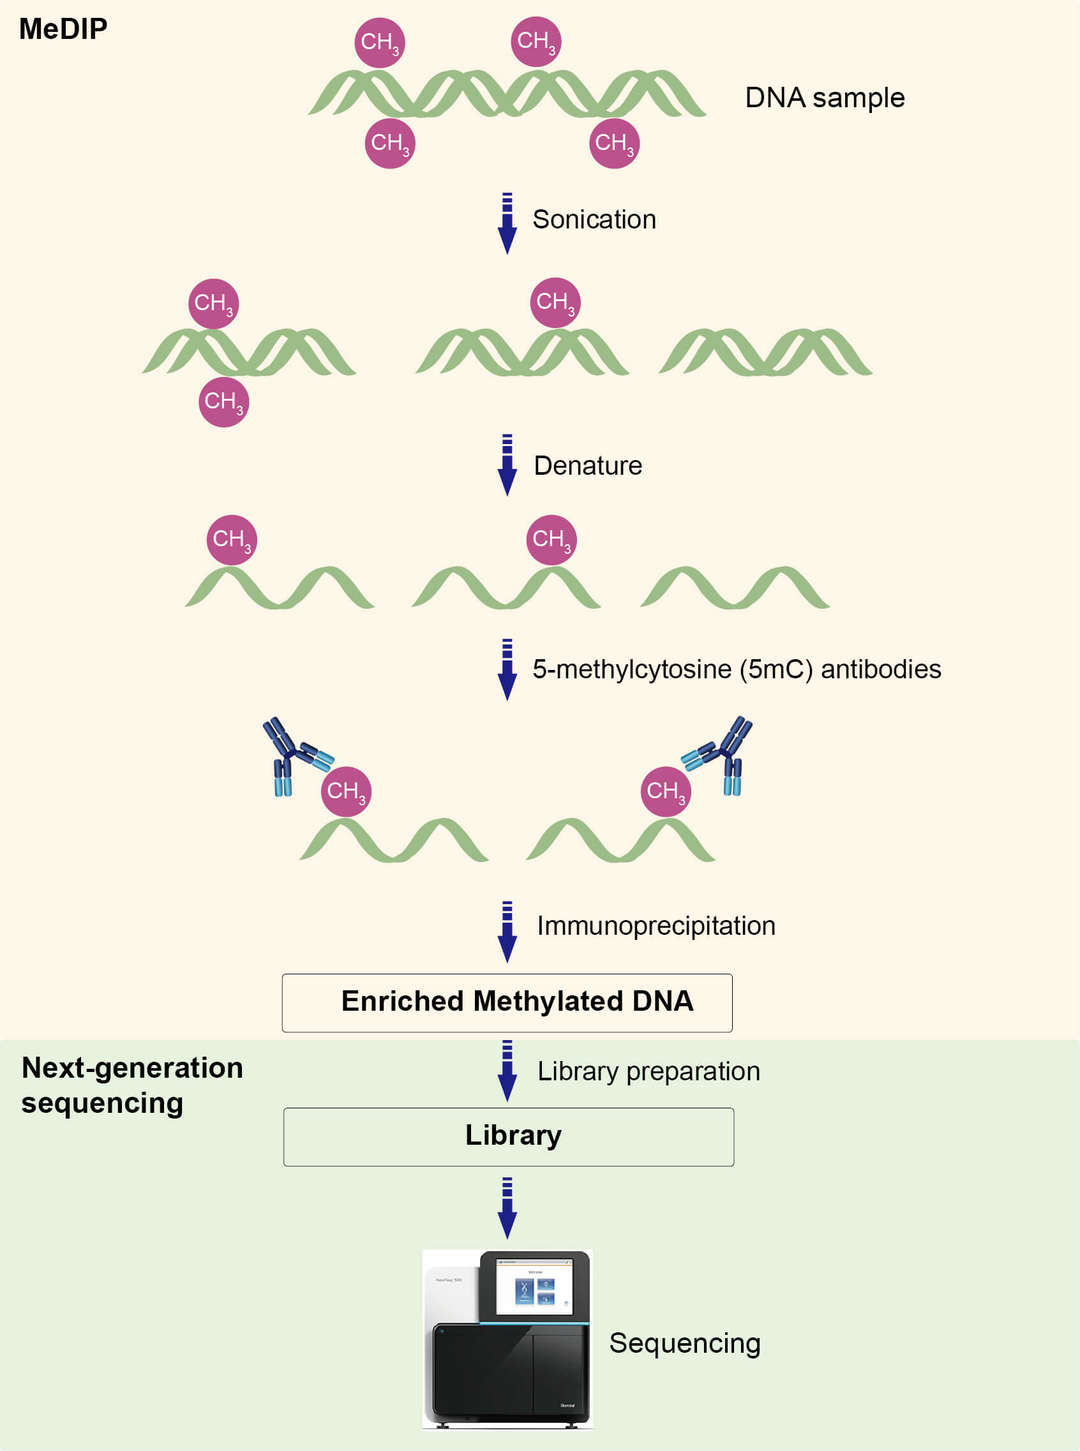 Overview of Methylated DNA Immunoprecipitation Sequencing (MeDIP-seq)